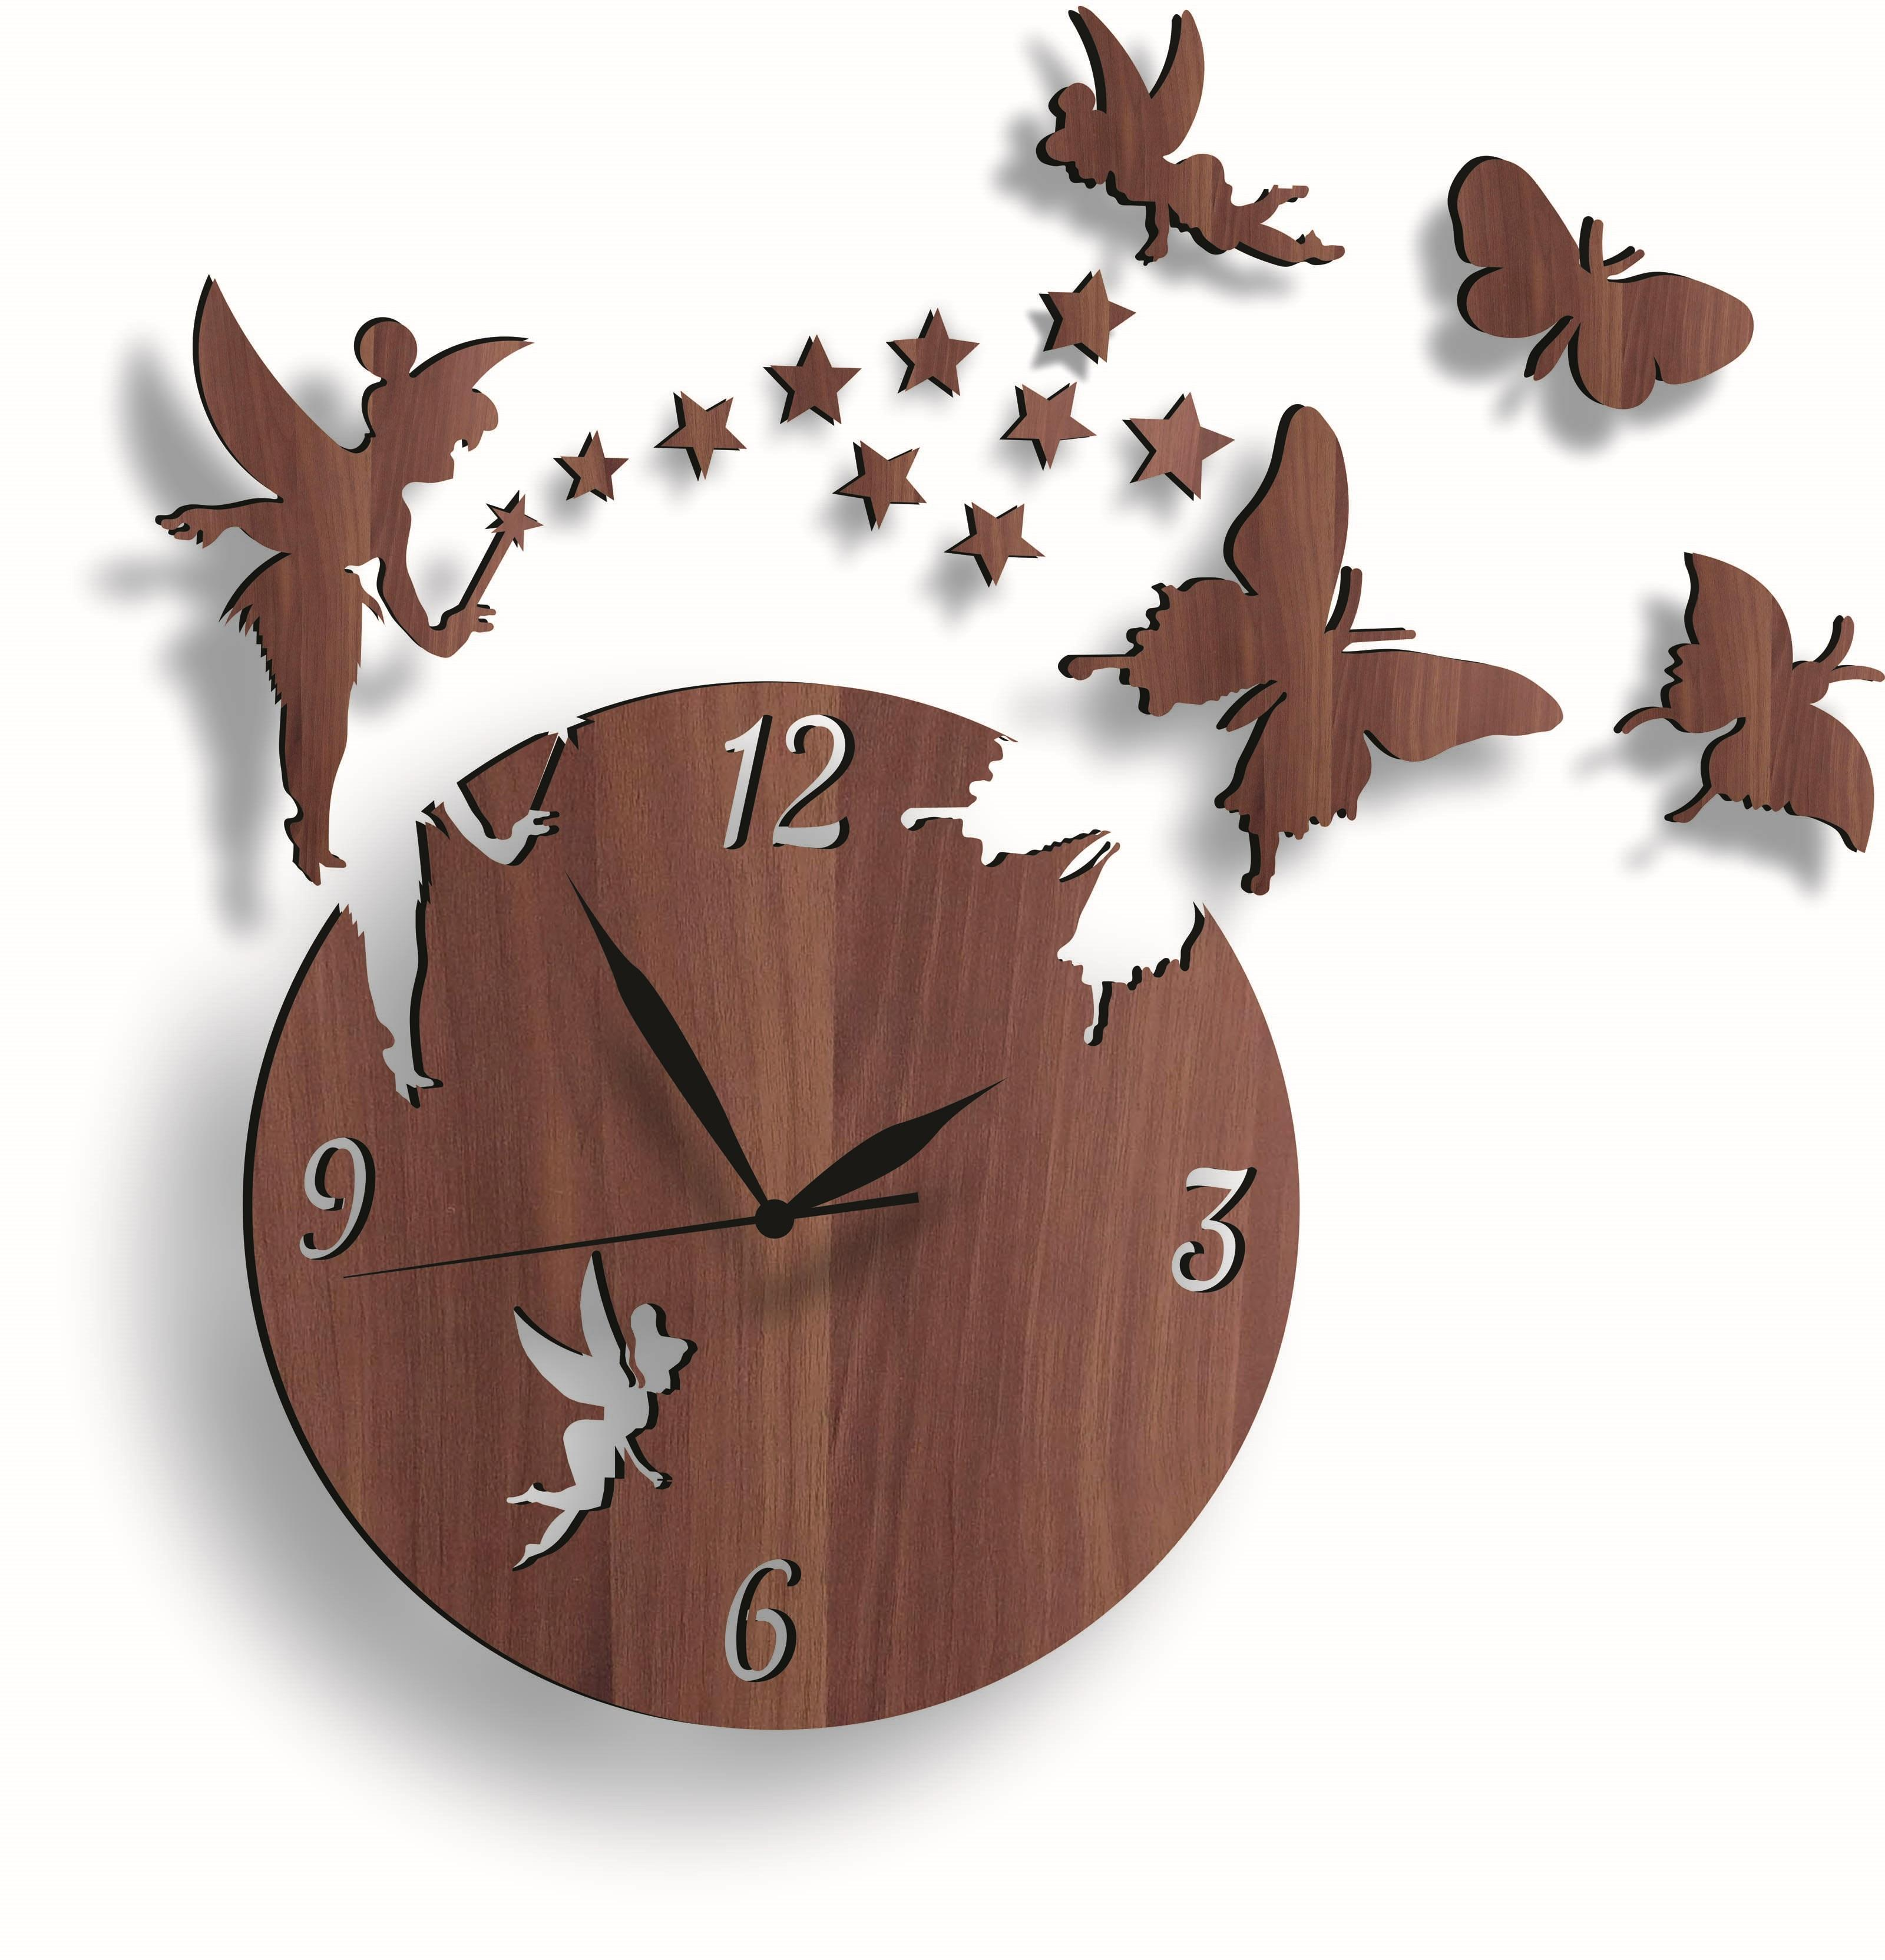 Wooden Wall Clock For Bedroom, Fairy Home Decor 3D watches,decoration Item For Home, 2 Fairy with 9 Stars 3 Butterflies, Laser Cut Stylish Design for Girls